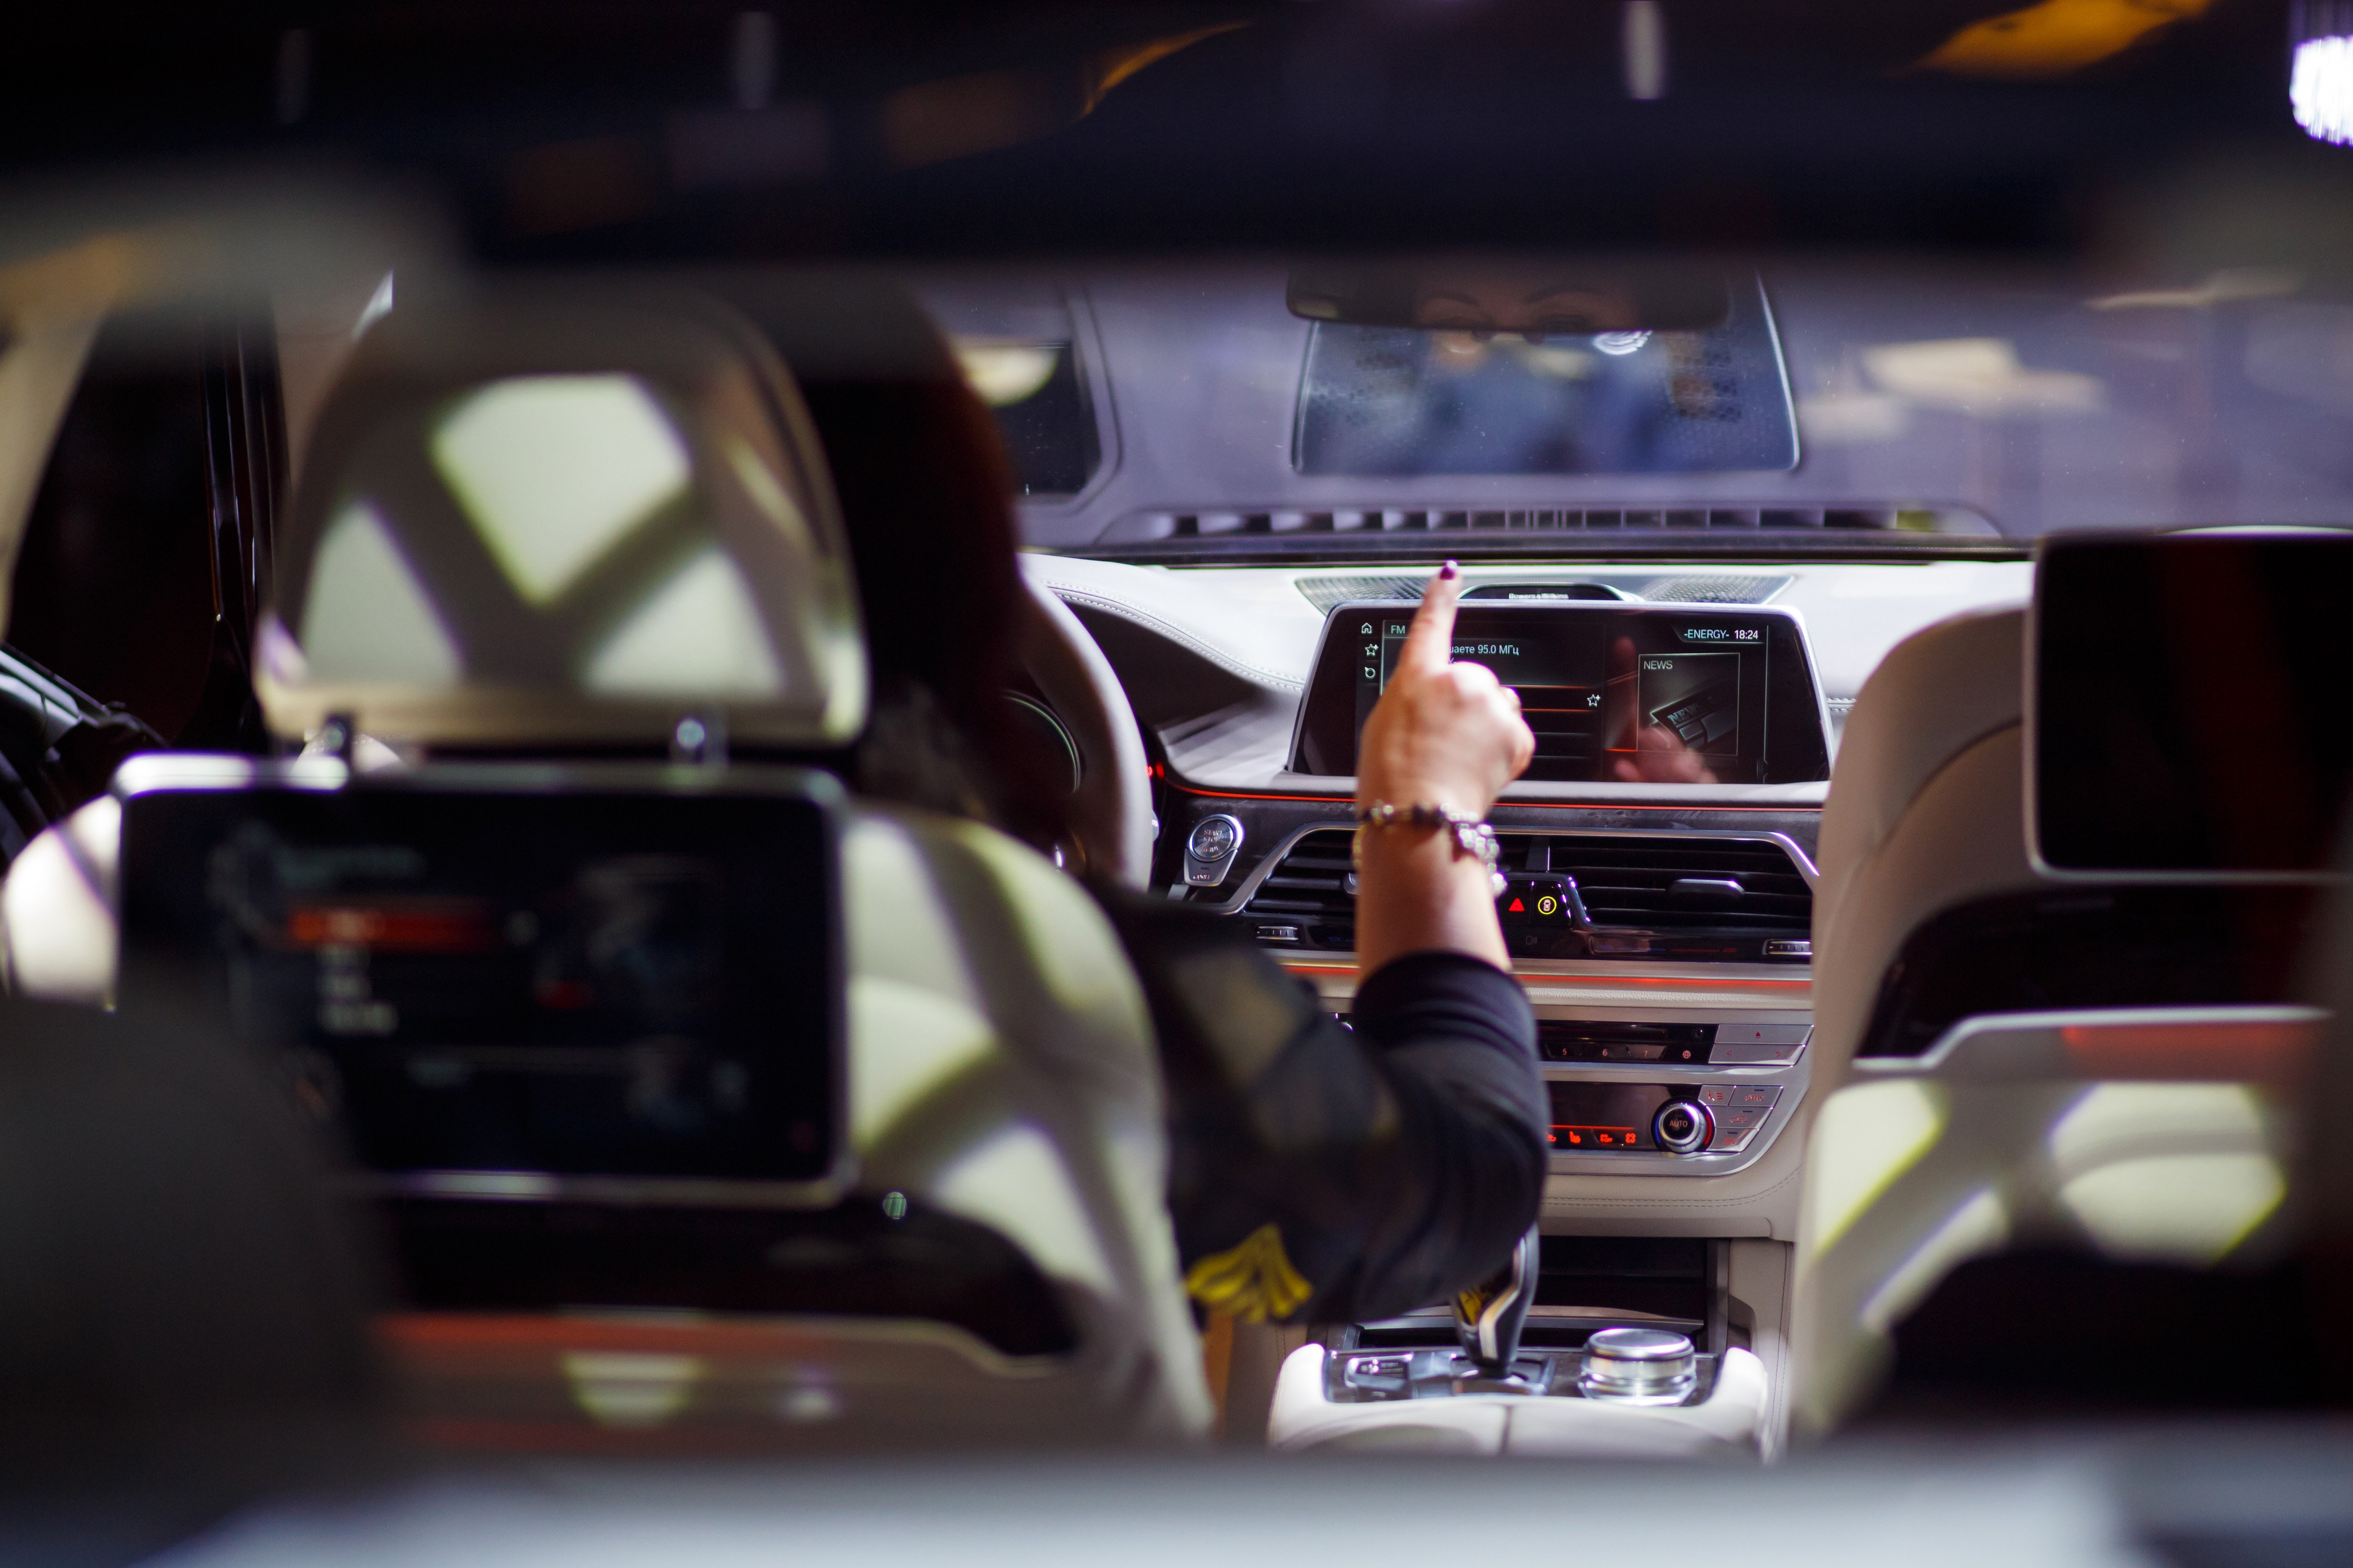 BMW 7 Series, introducing Gesture Control for the first time on this model